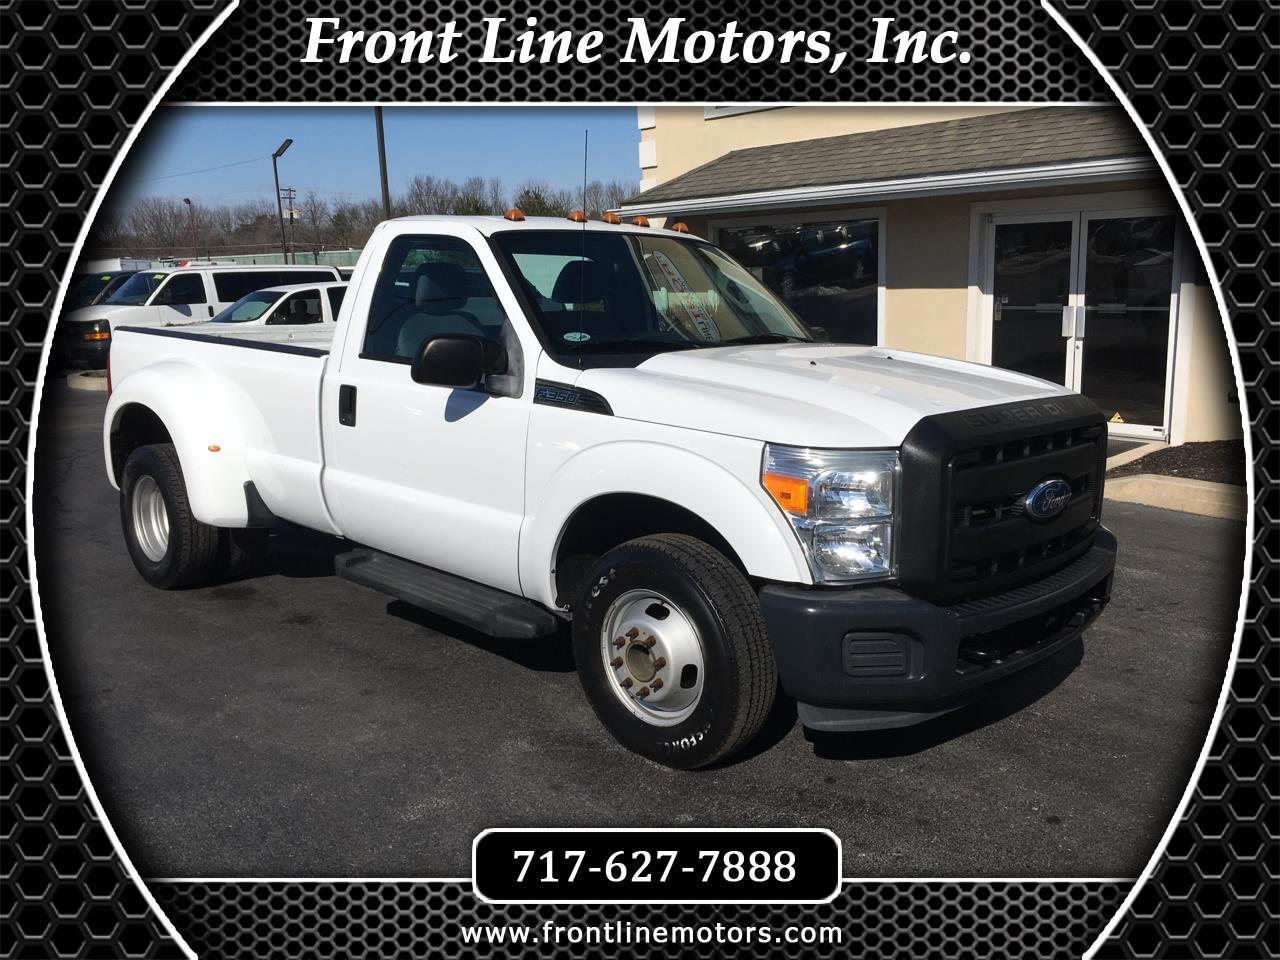 2011 Ford Super Duty F-350 DRW 2WD Reg Cab 137